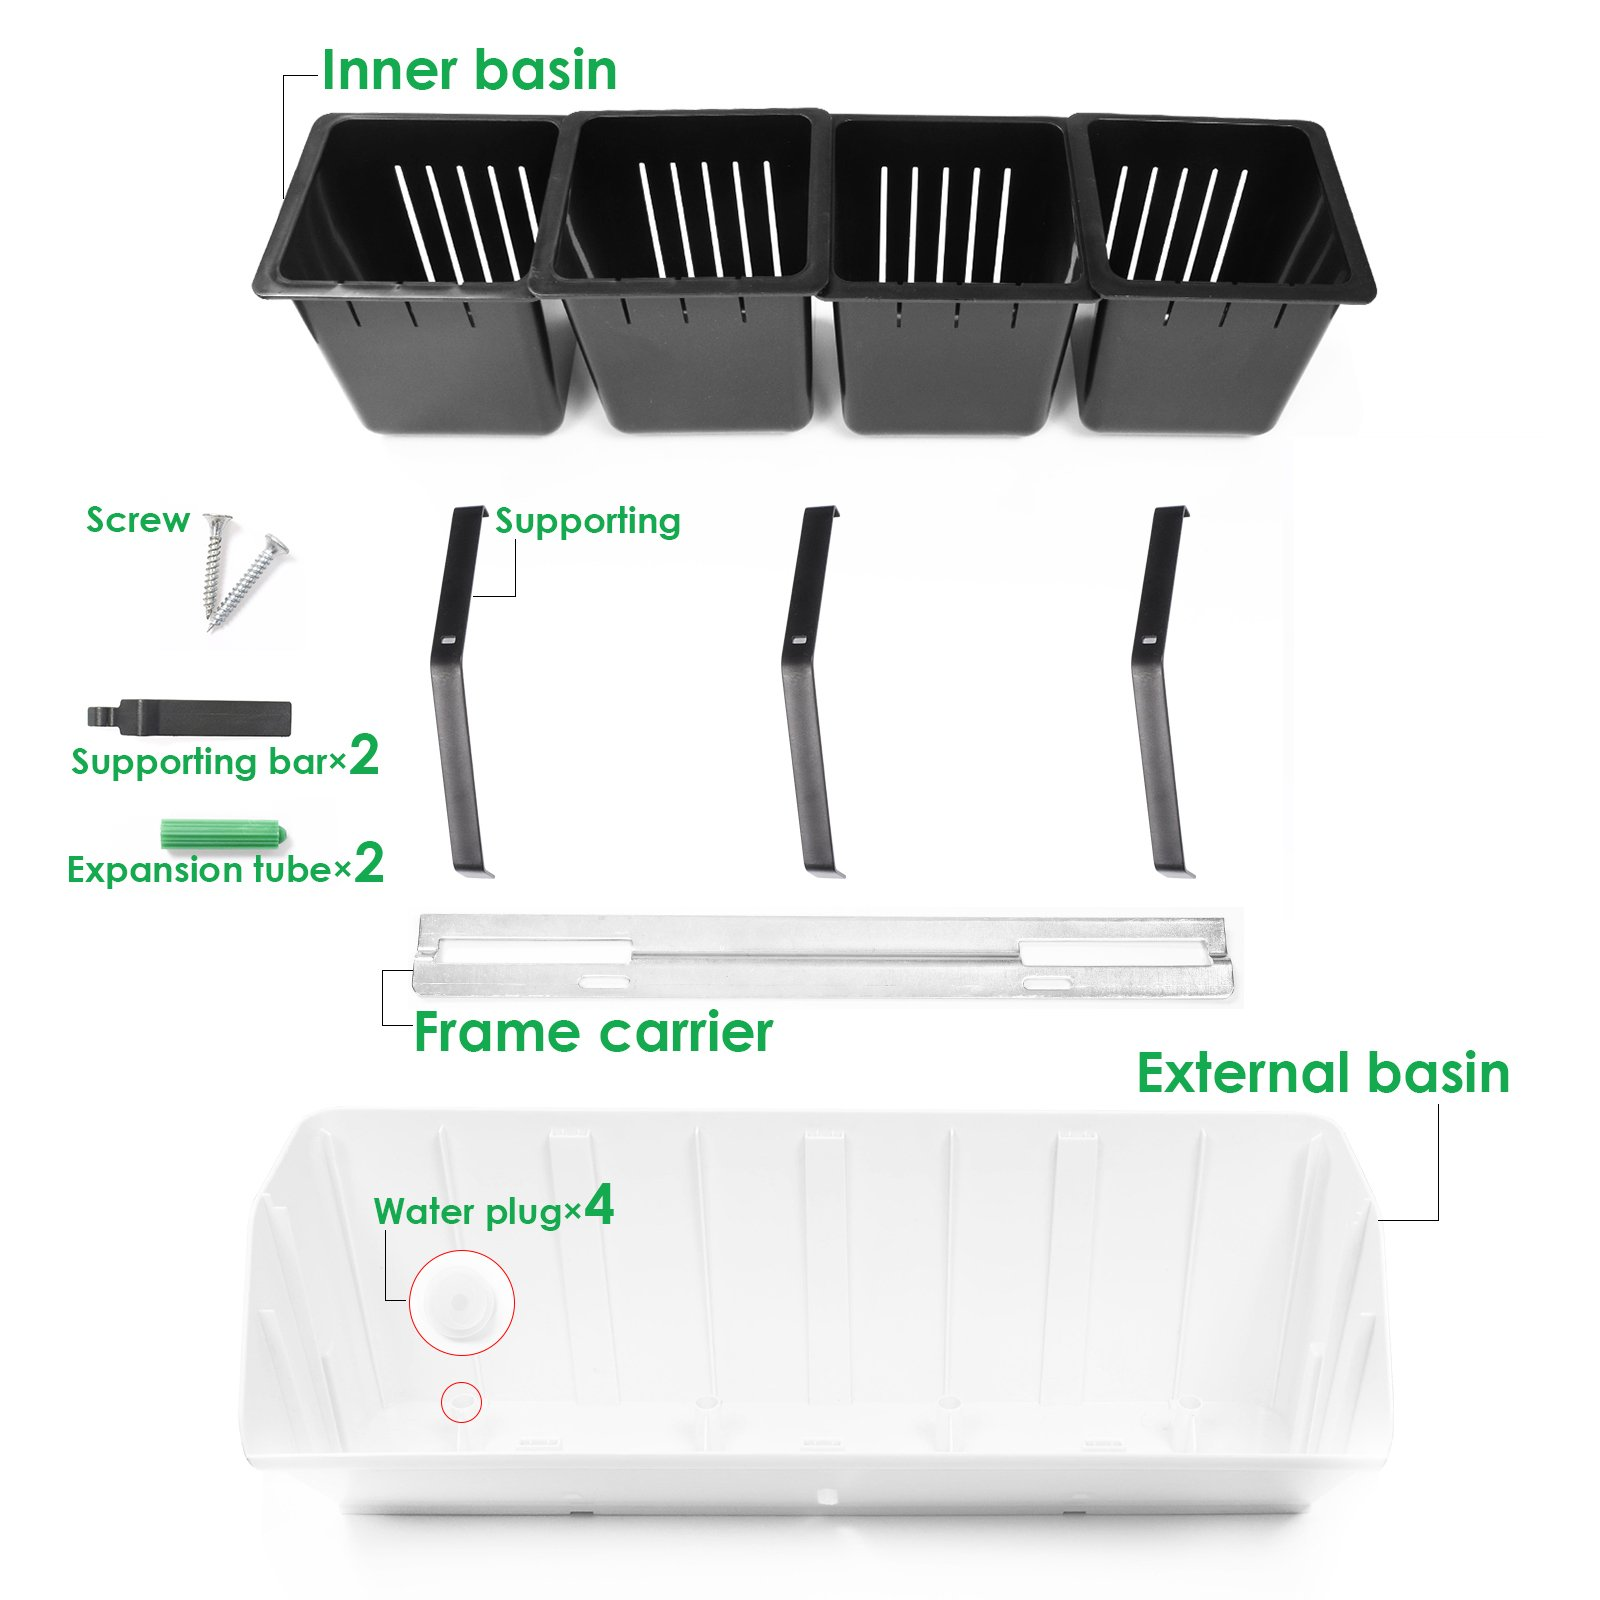 KORAM 20-inch Vertical Garden Wall Planter 1 Row 4 Pots Living Wall Hanging Flower Box Wall Mount Plant Pot for Balcony Vegetable Gardens Growing Kit, 1-Pack